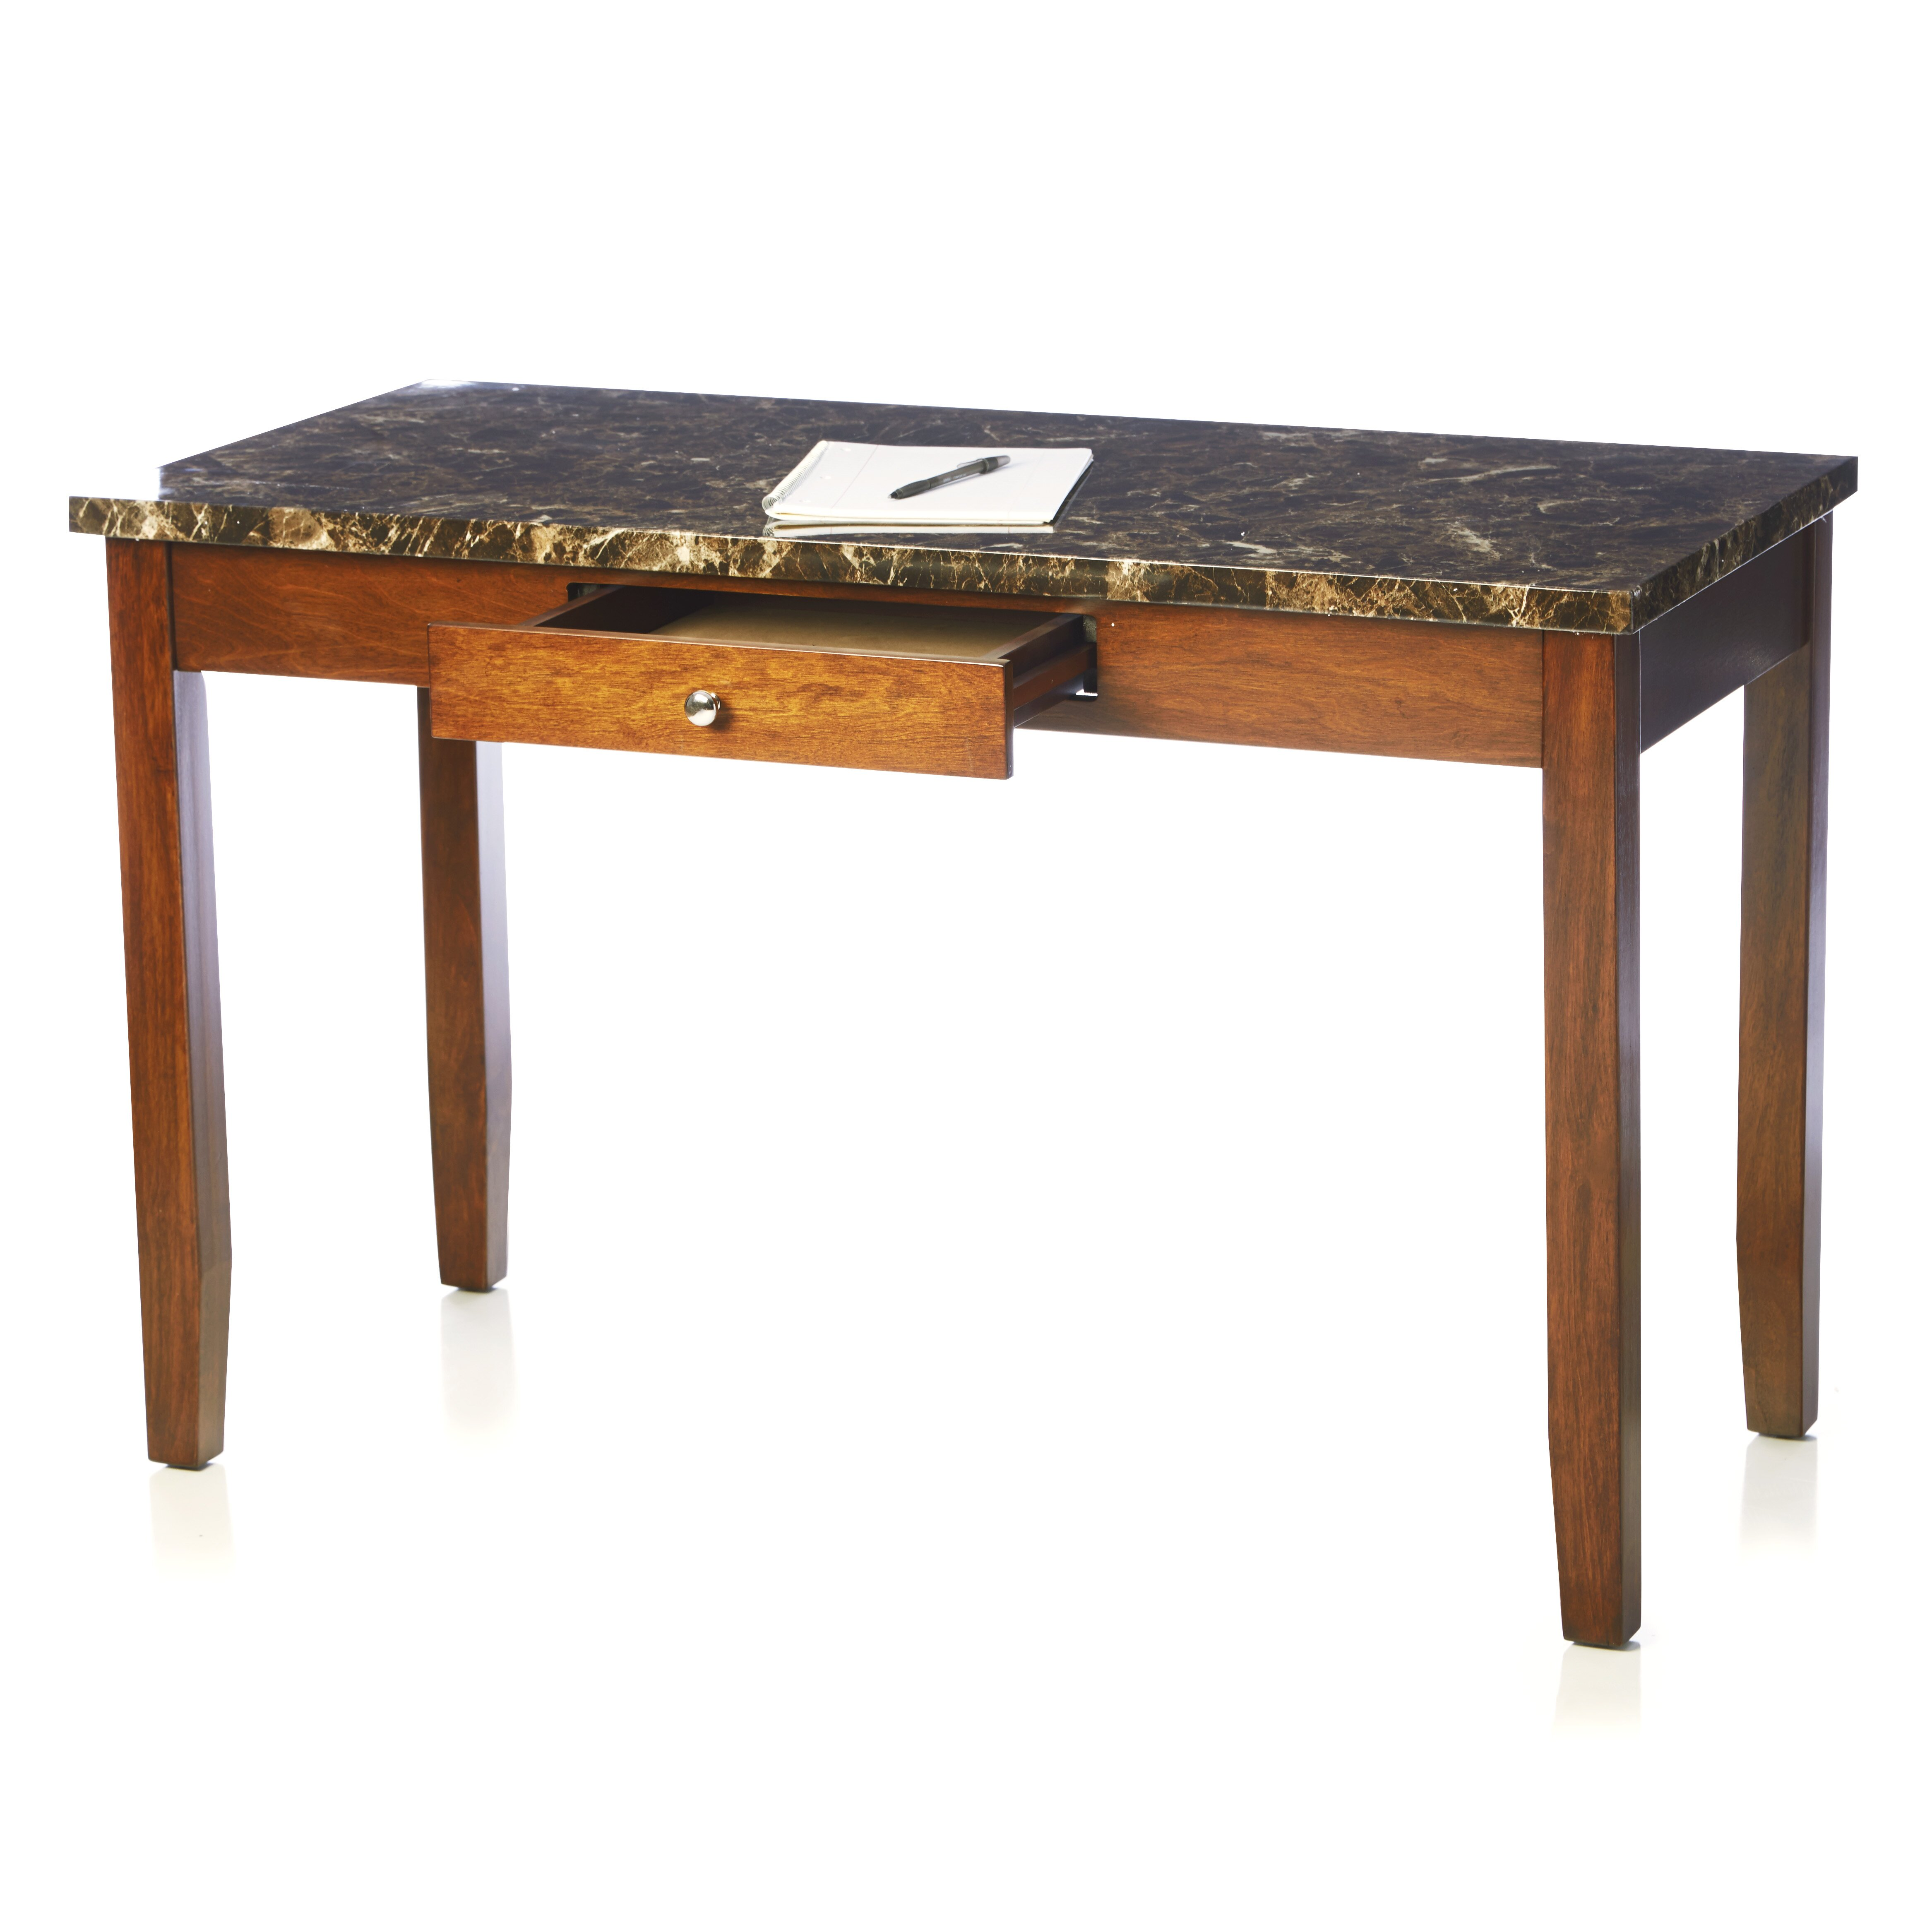 writing desk with chair Shop the best selection of authentic knoll seating, including modern dining chairs, lounge chairs, barstools, and ergonomic desk chairs.